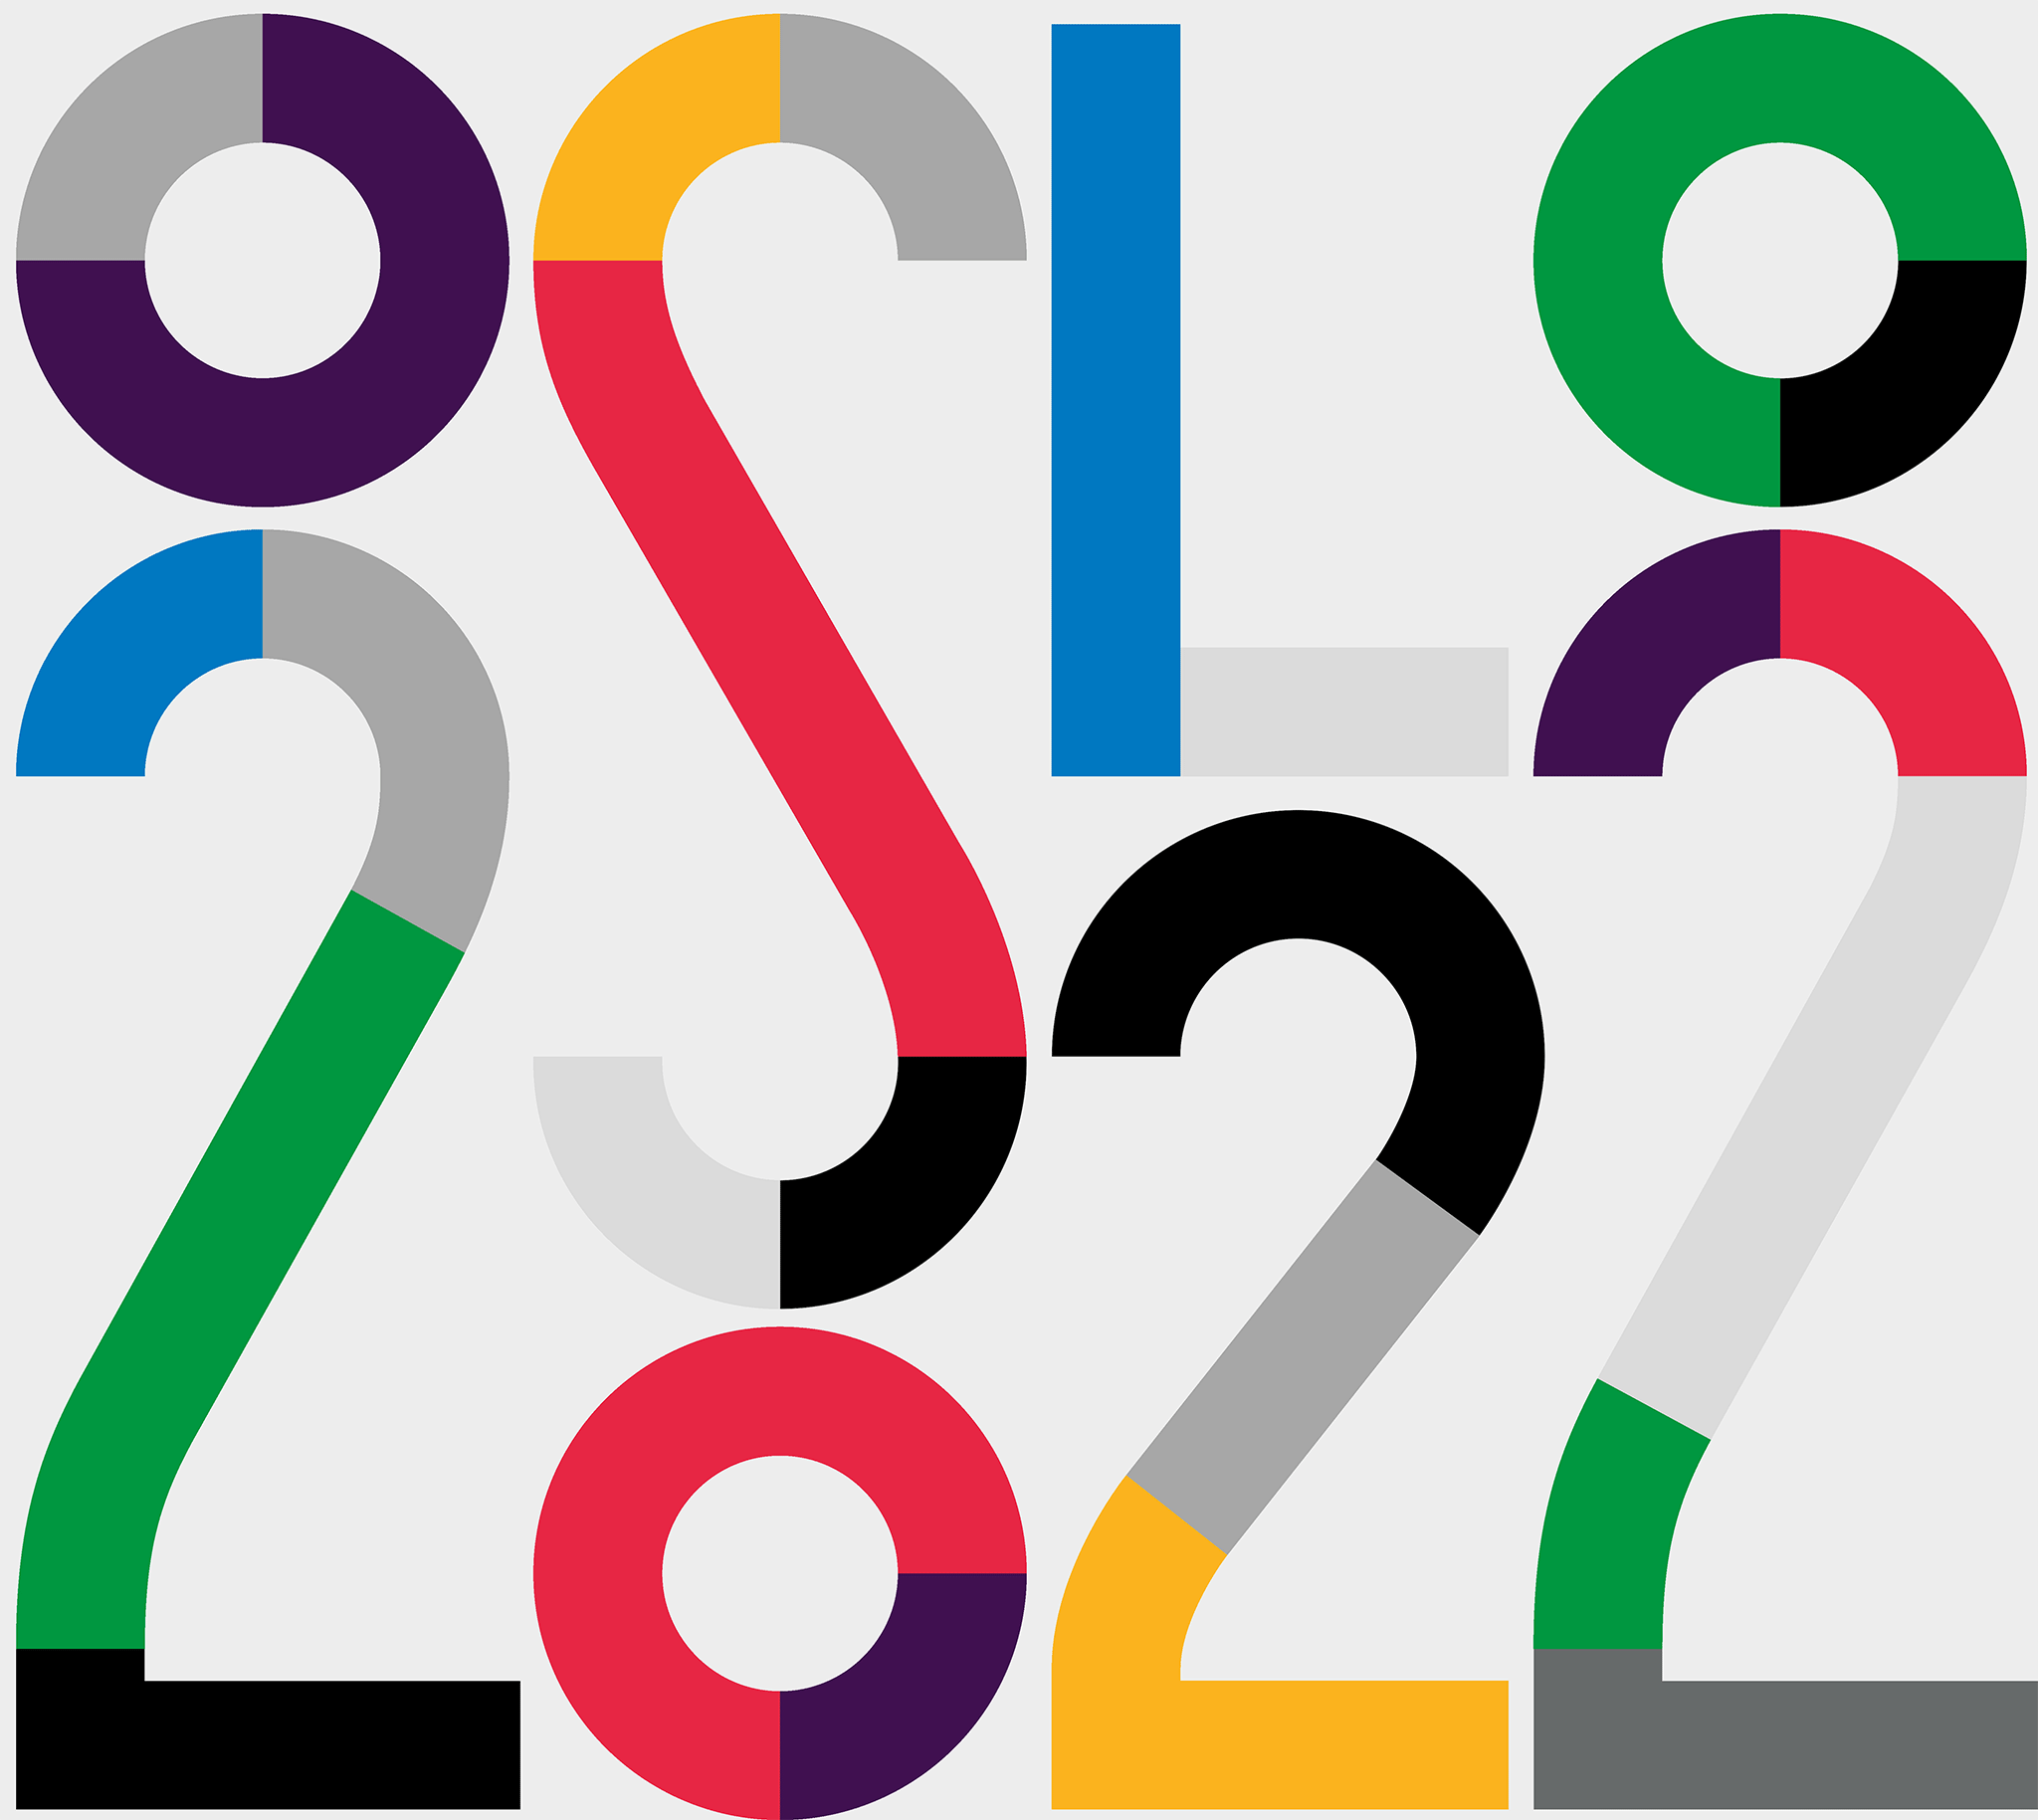 Public support for the Oslo 2022 Winter Games bid has slipped to a new low ©Oslo 2022